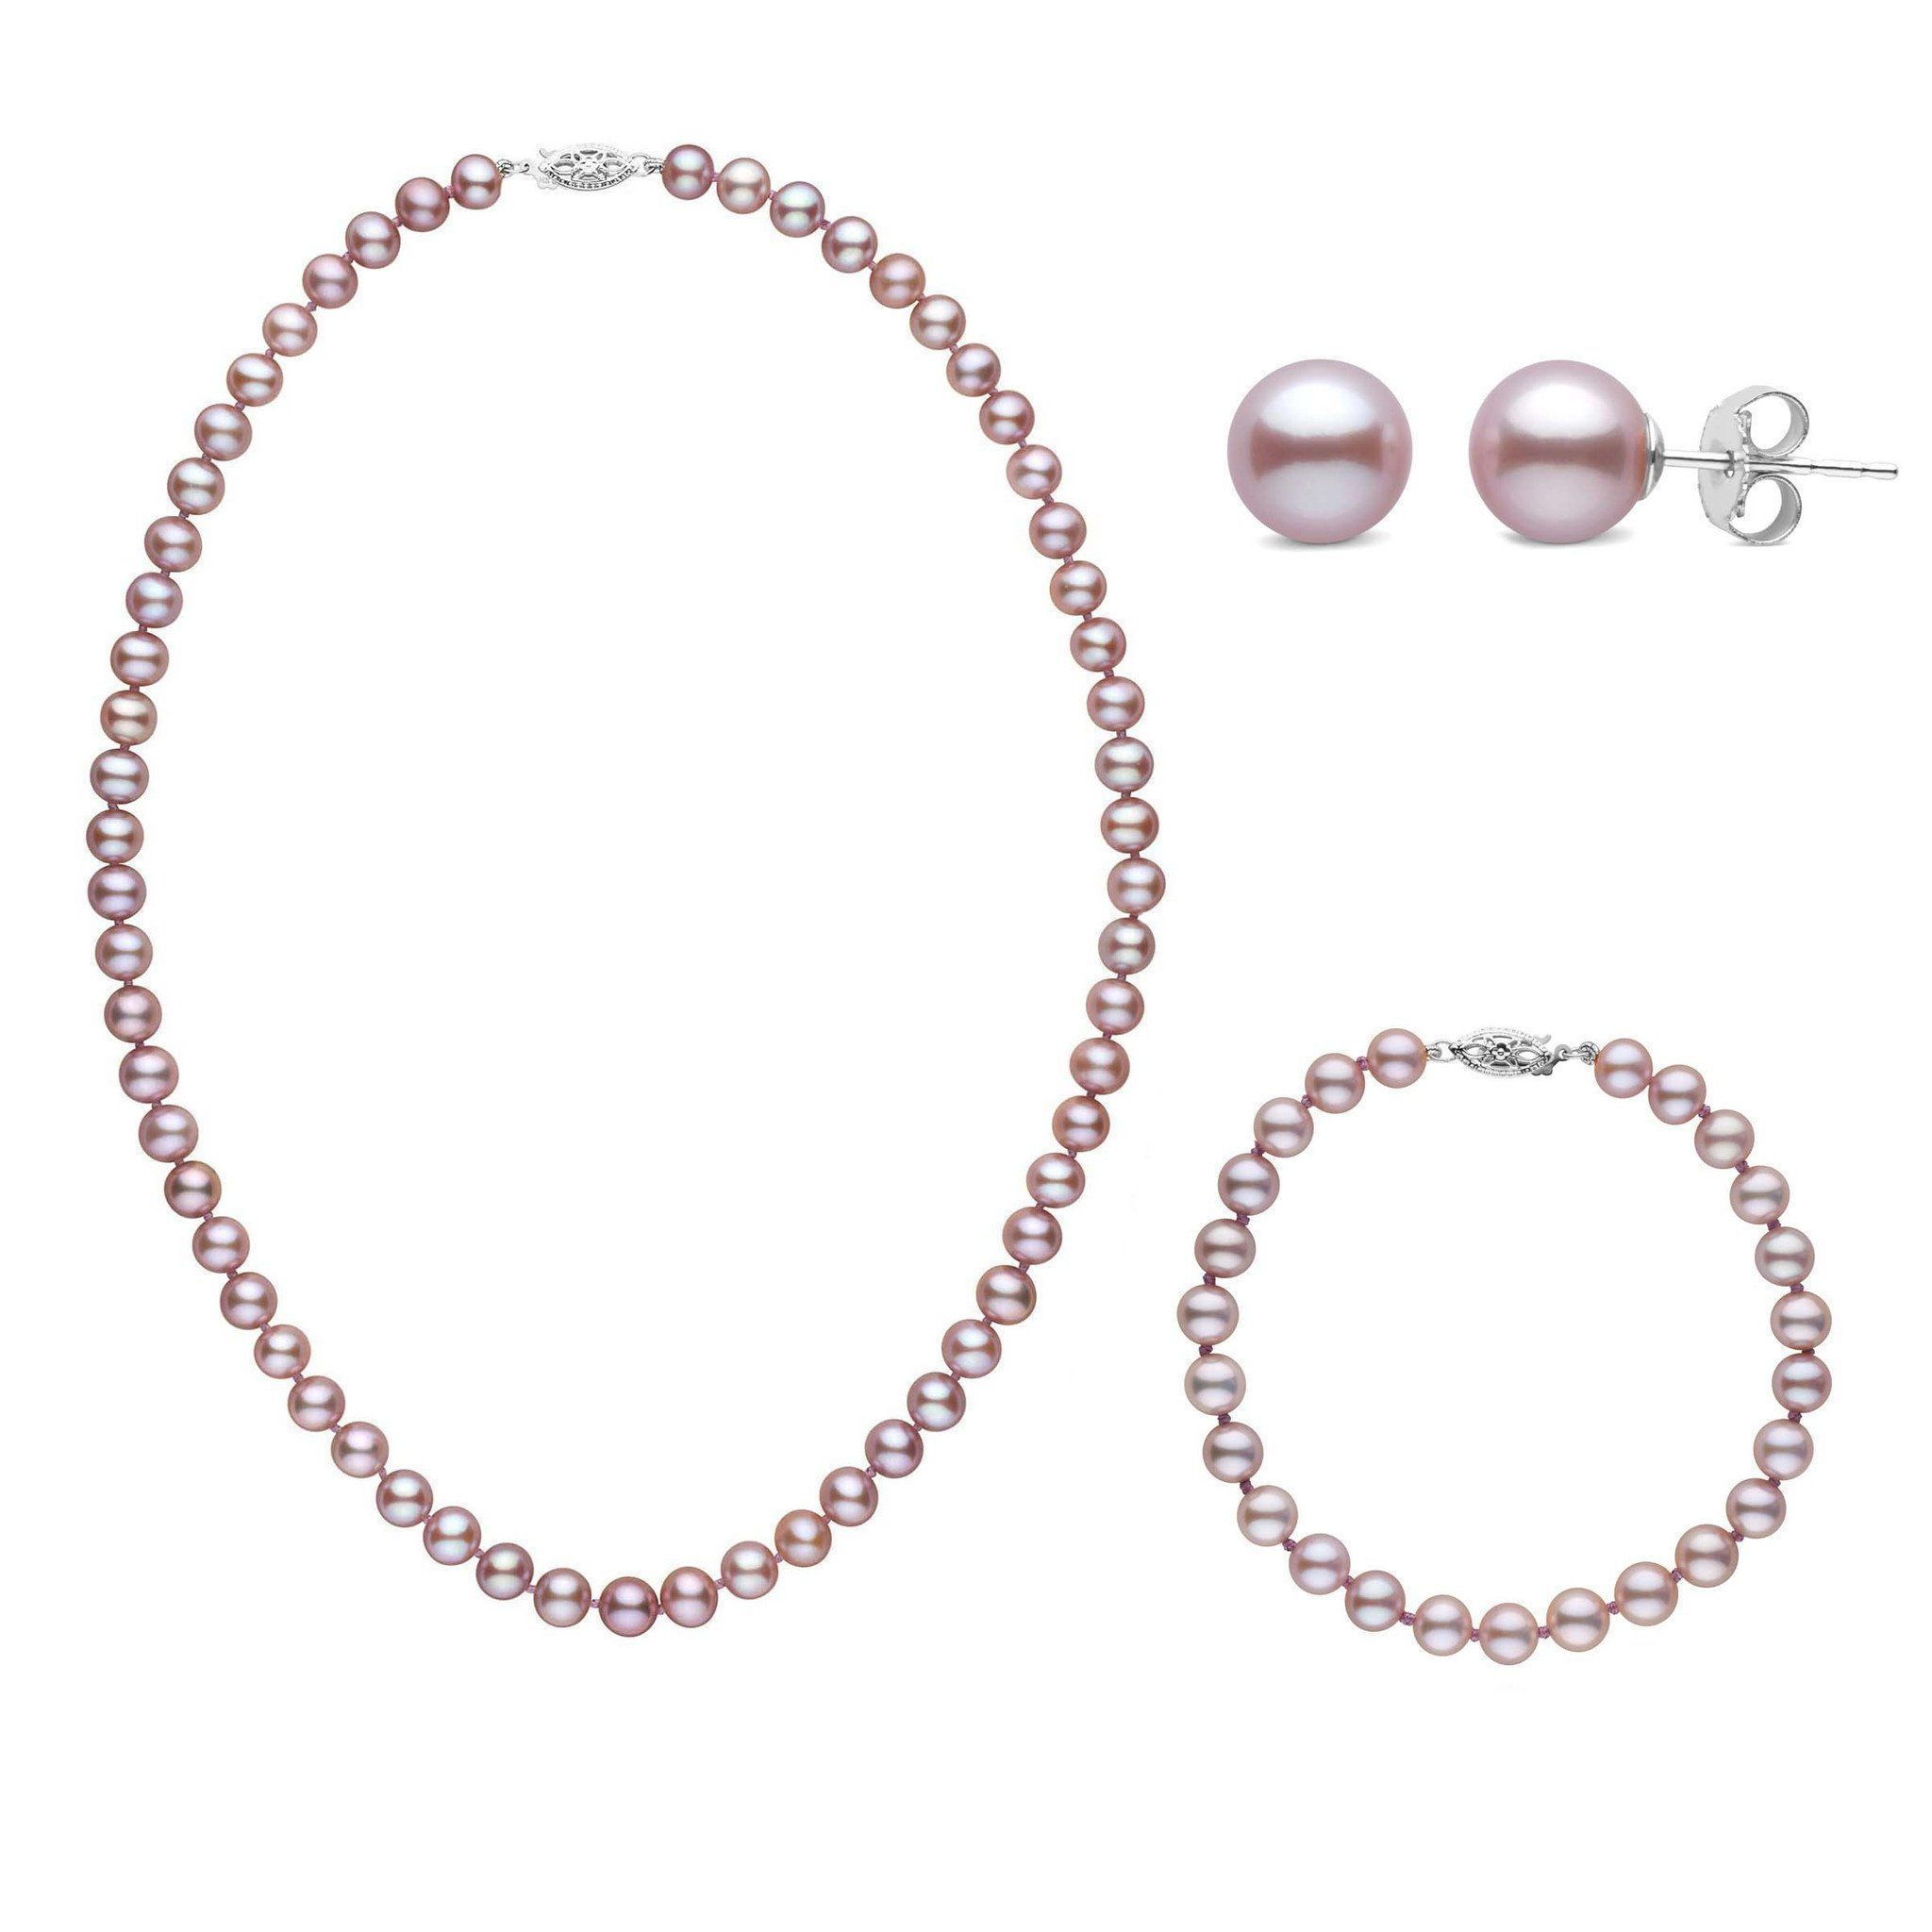 16 Inch 3 Piece Set of 6.5-7.0 mm AAA Lavender Freshwater Pearls